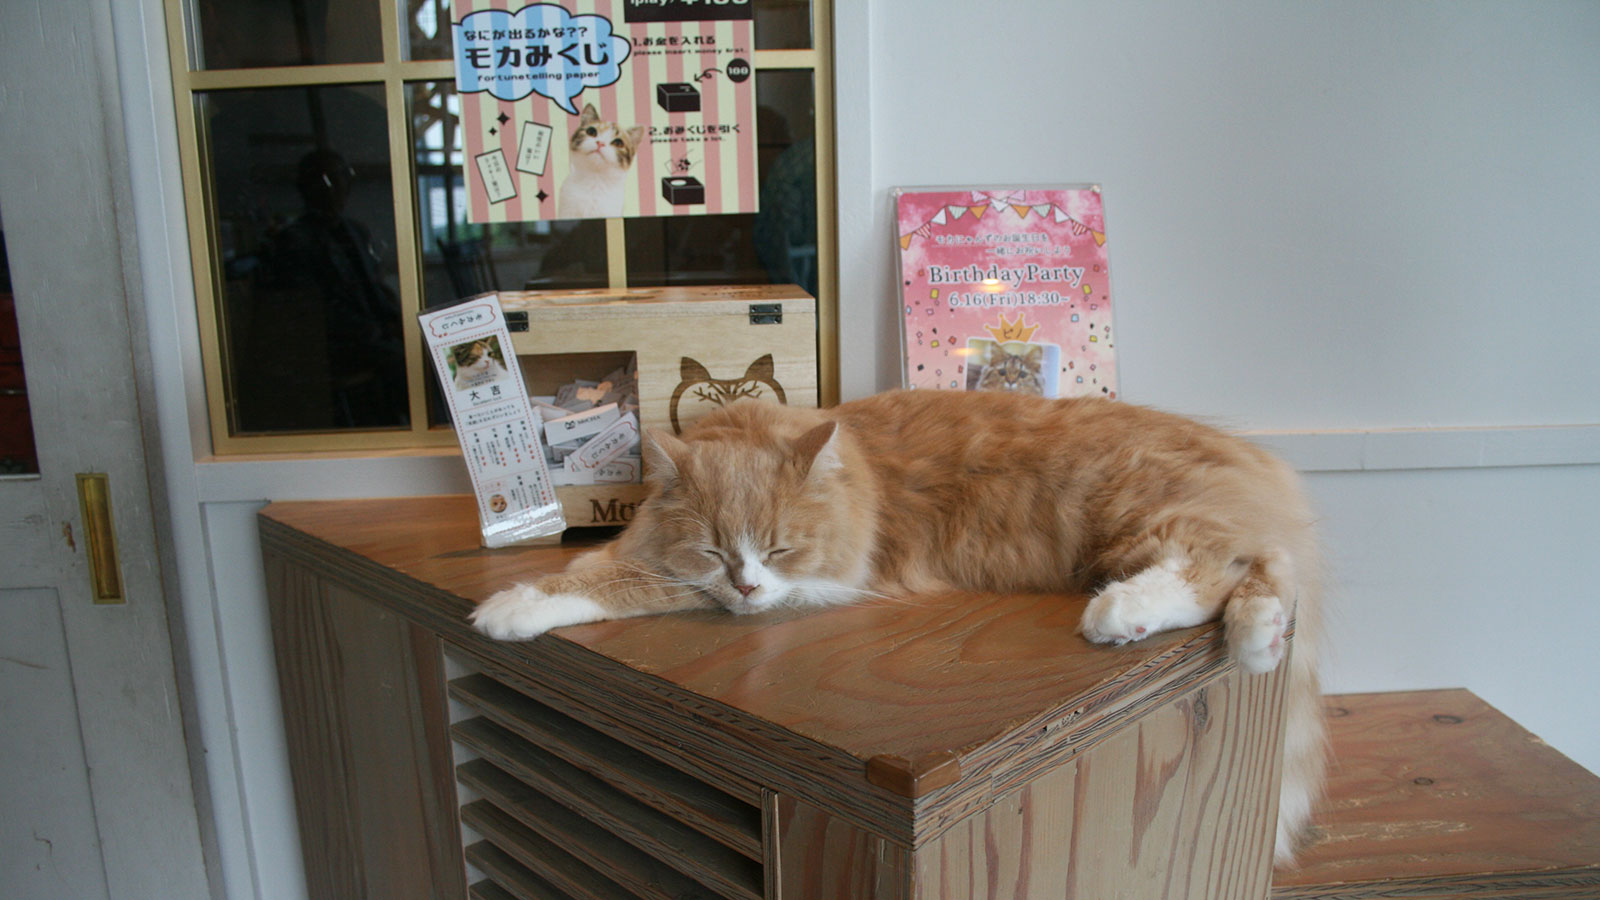 A Peek Inside Harajuku's Uber-Adorable Cat Cafe